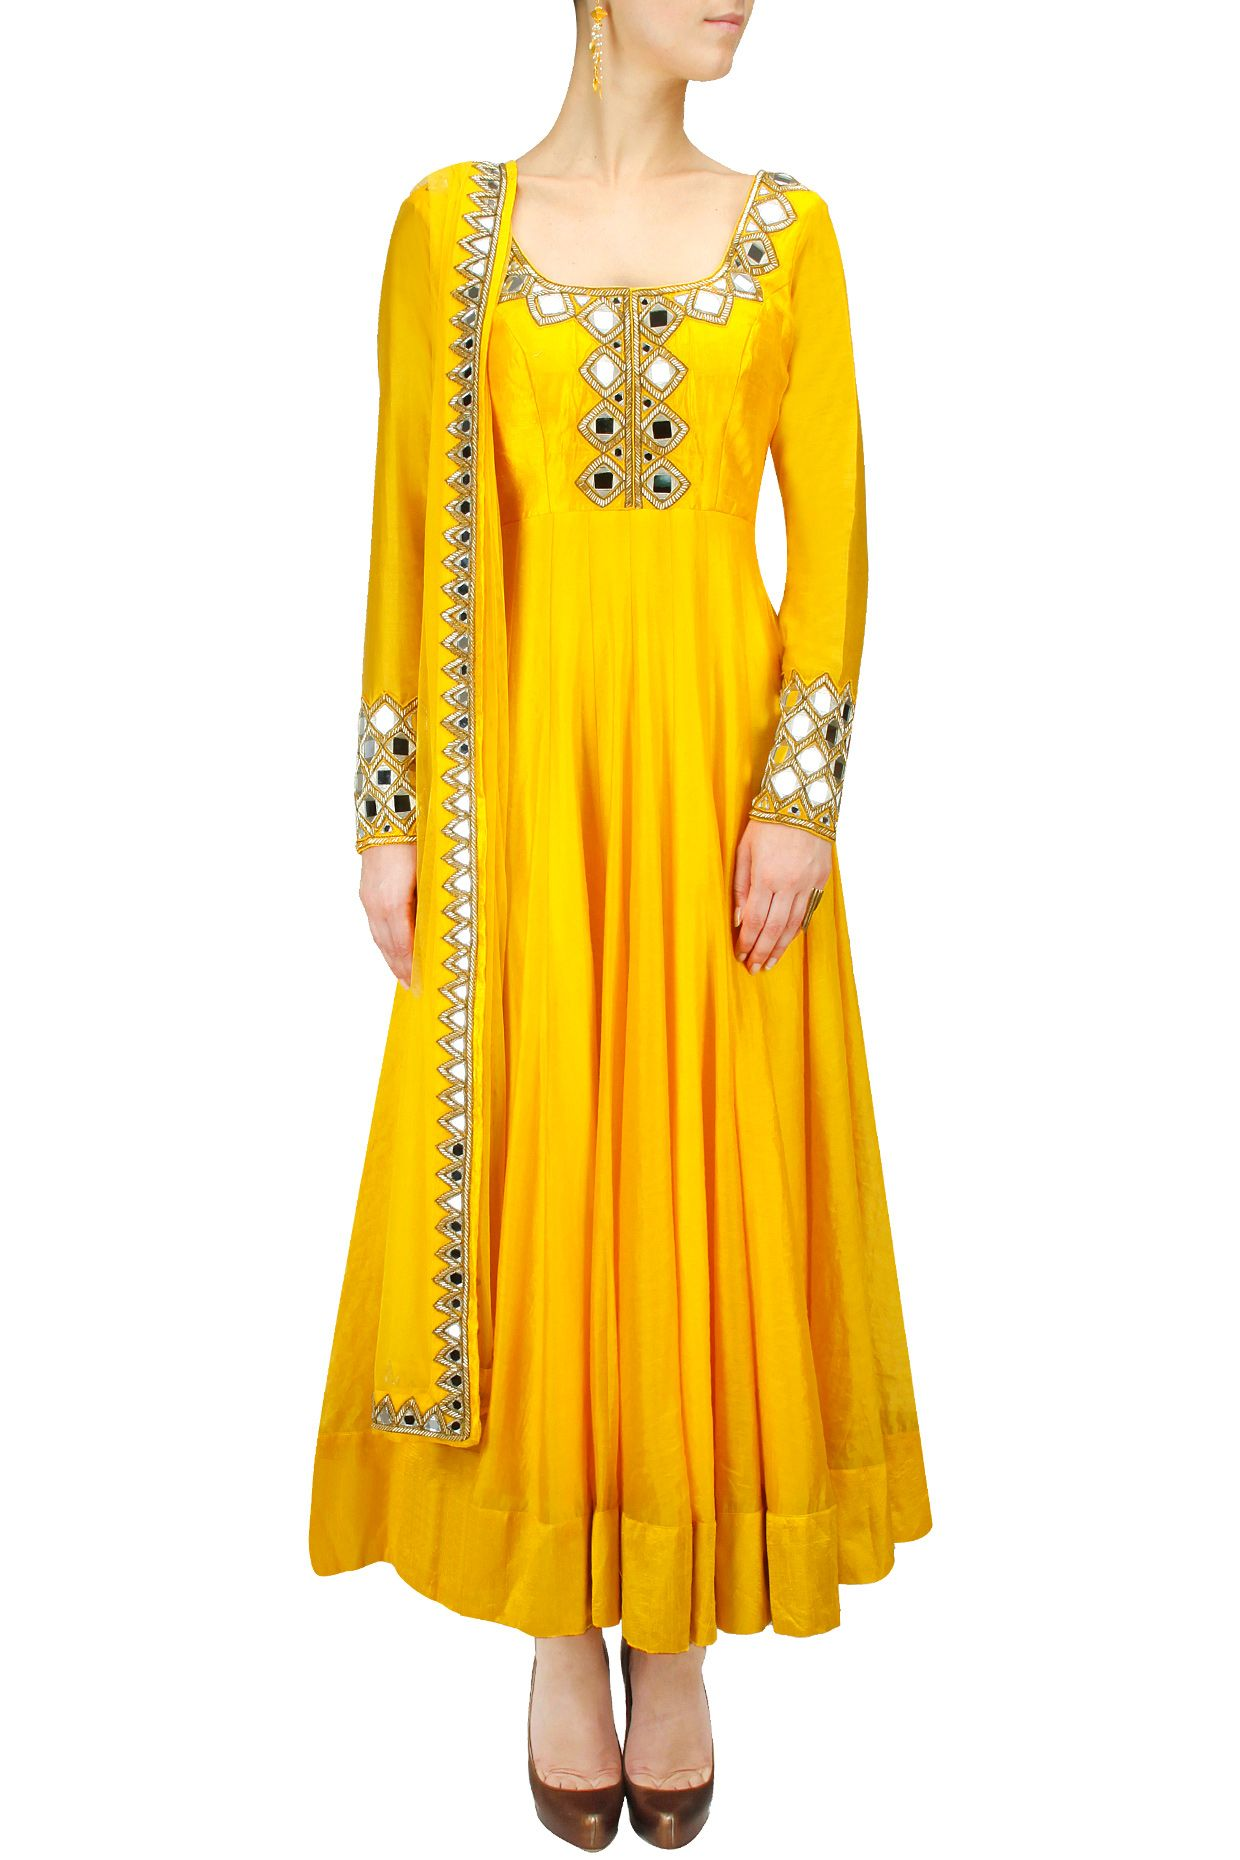 79cfbe64b3e3d Sunny yellow mirror work anarkali set BY ARPITA MEHTA. Only wish it had a  contrasting or textured border instead if the current yellow border at the  base.